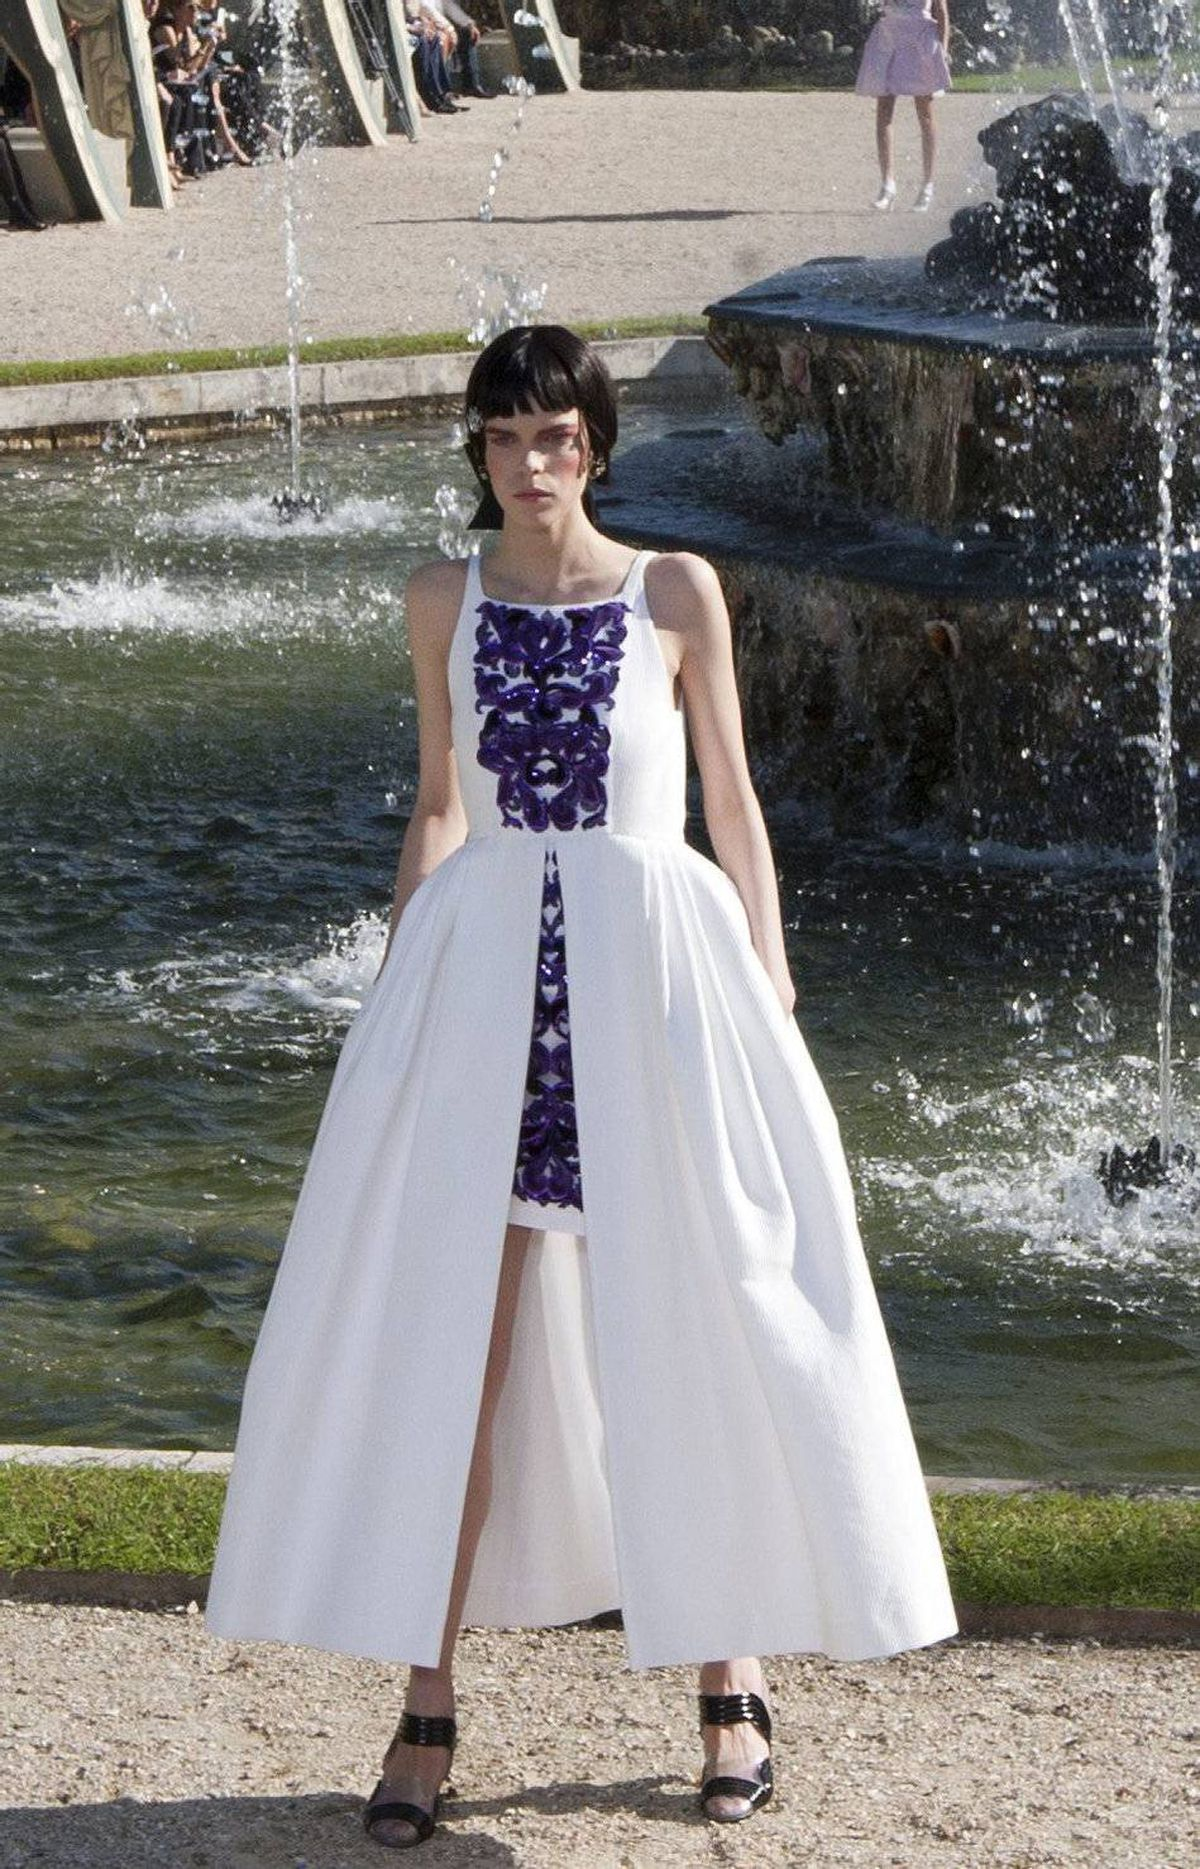 Guests donning enough Chanel to fill a museum show entered the palace grounds to an arrangement of cabanas placed around a grand fountain that spouted and burbled with gusto. Tilda Swinton, Vanessa Paradis and Vogue's André Leon Talley were some of the recognizable faces among international clients and editors.